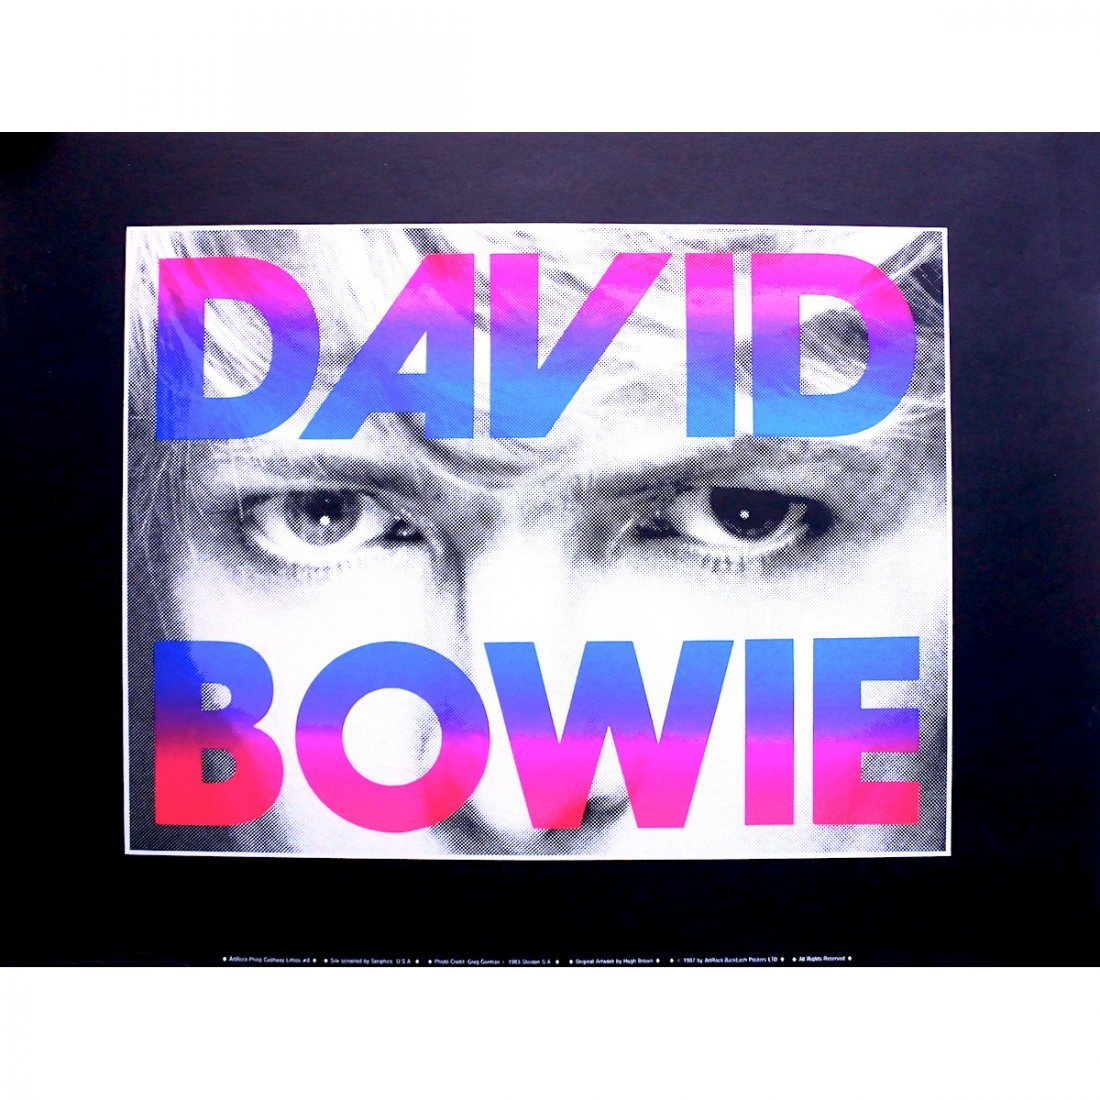 David Bowie - 1987 Promotional Poster